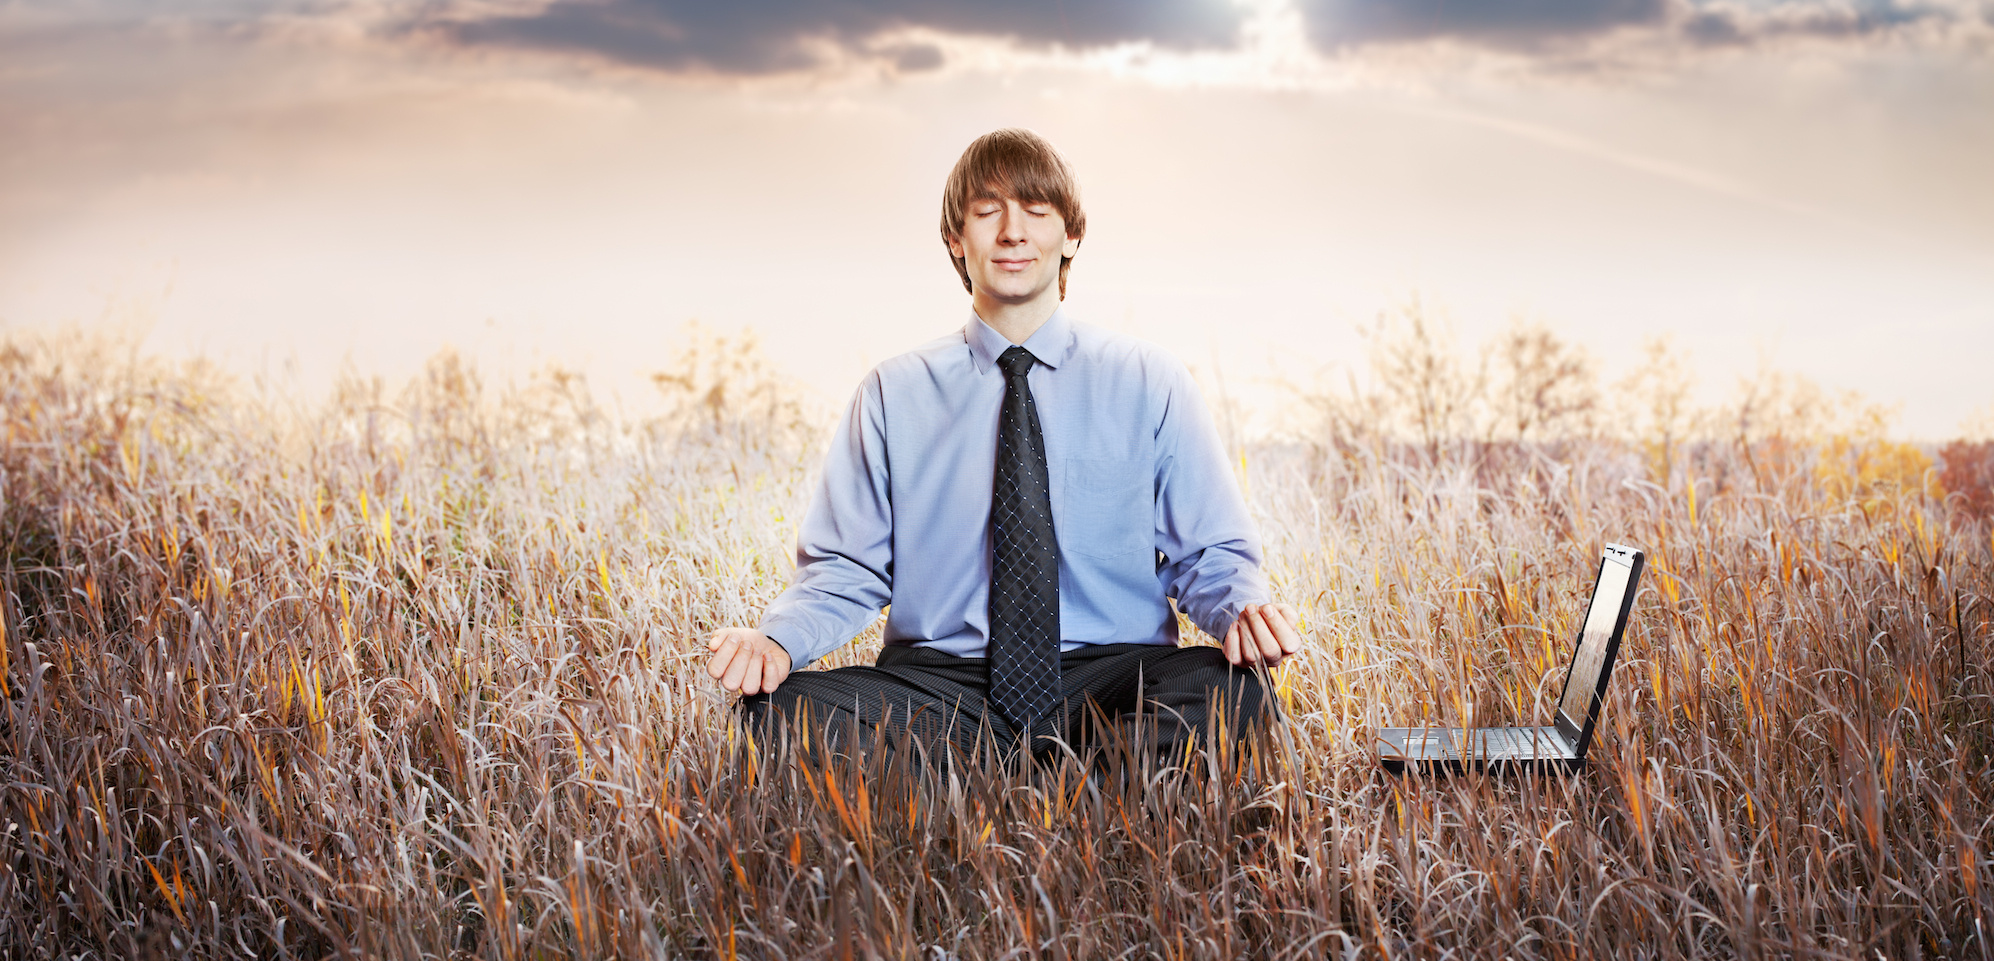 Need a Breather? 5 Ways to De-Stress at Work